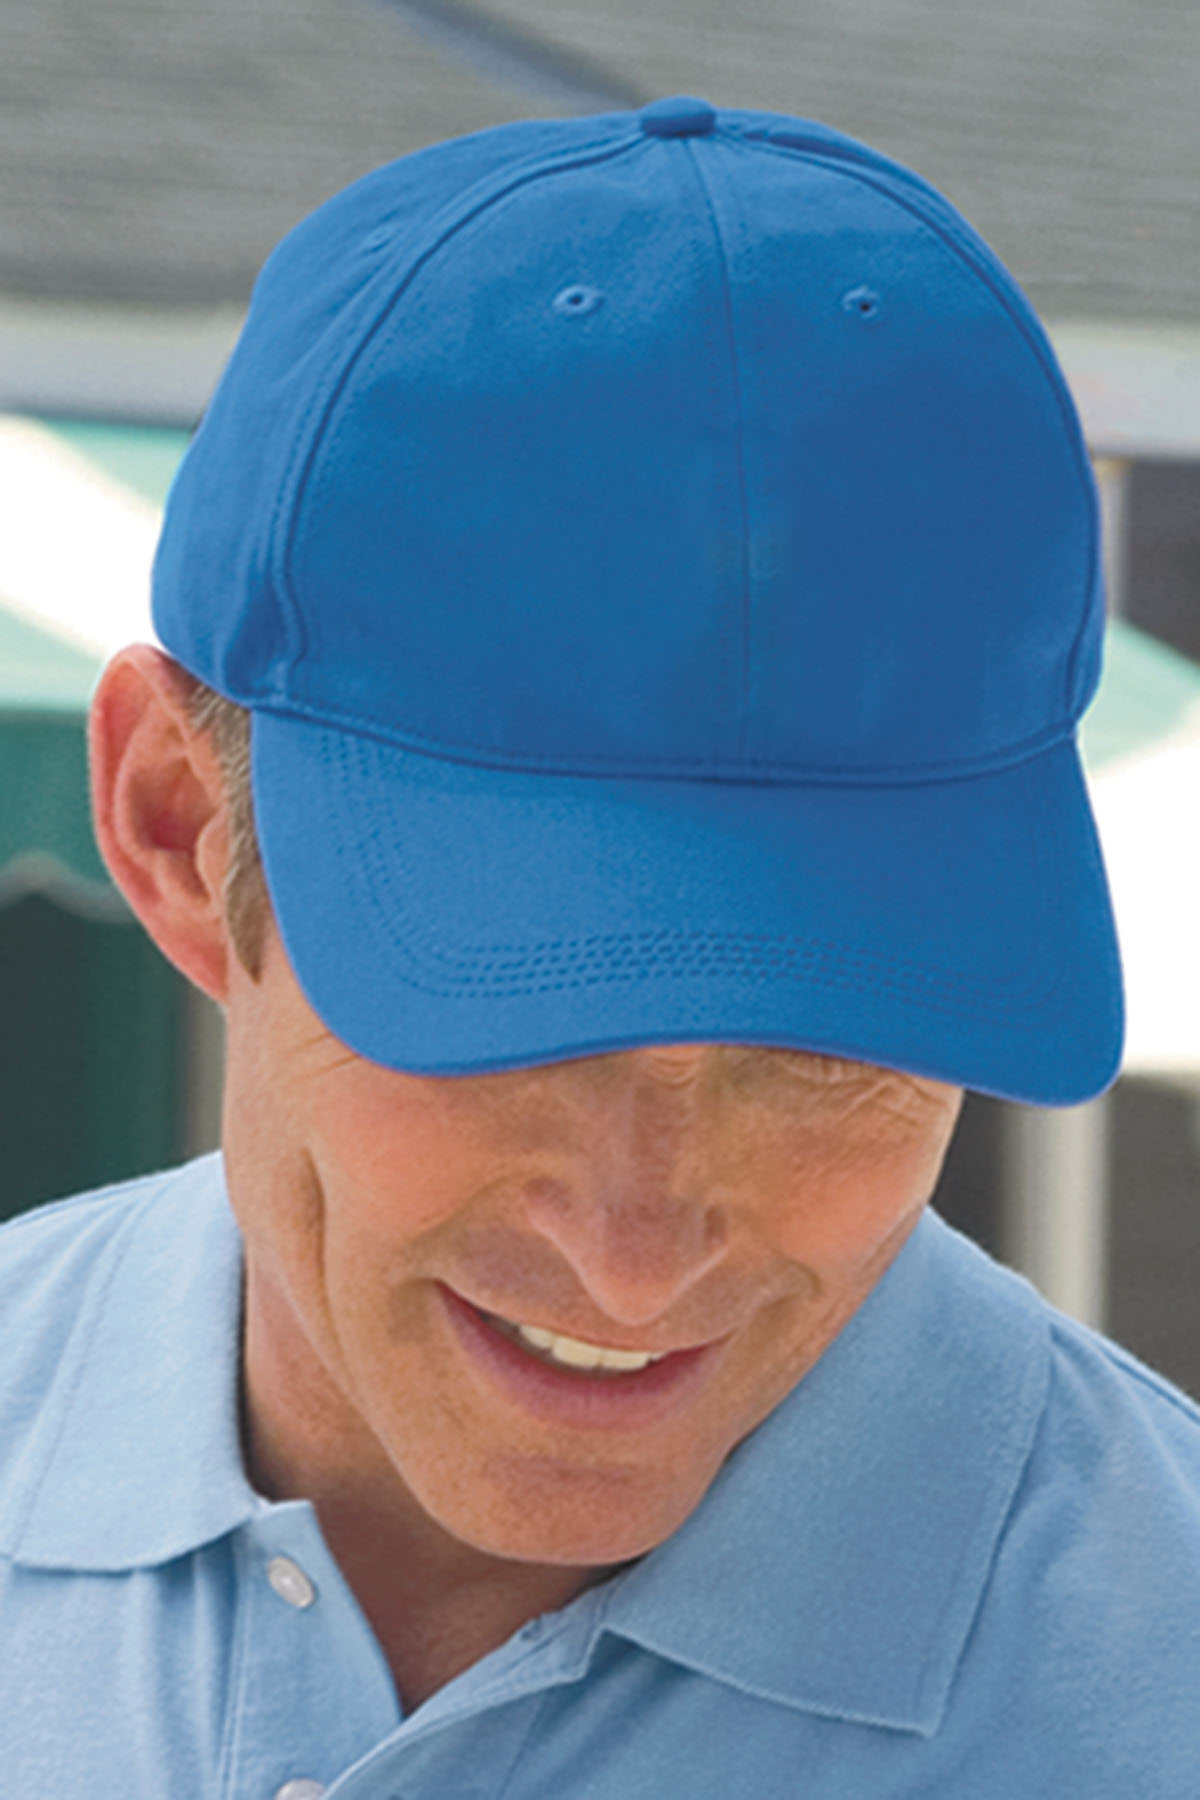 Vantage 0170 - Solid Brushed Twill Constructed Cap